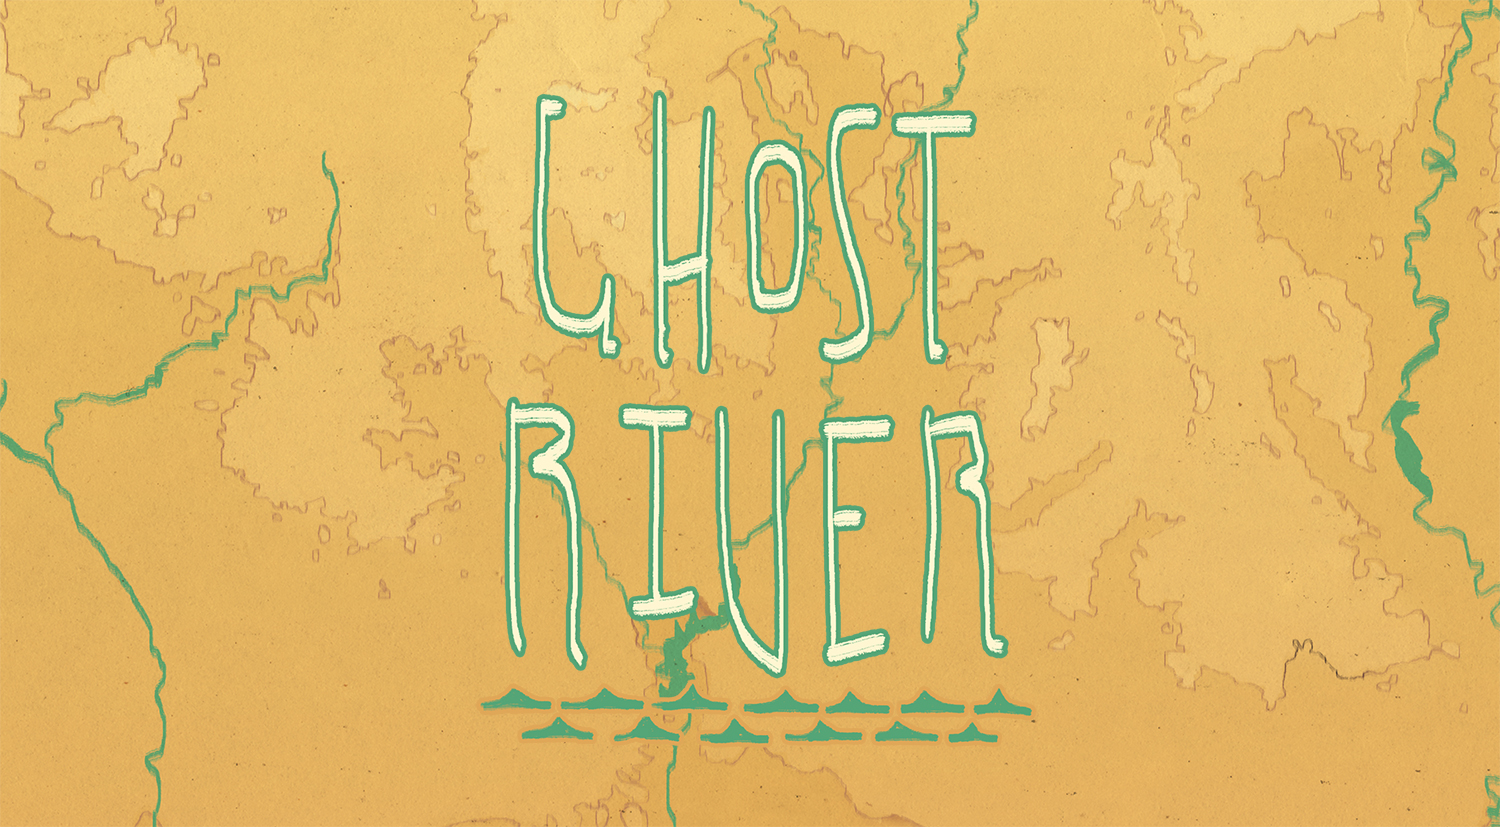 The Ghost River logo. It's overlaid onto a map of the Salt River watershed.